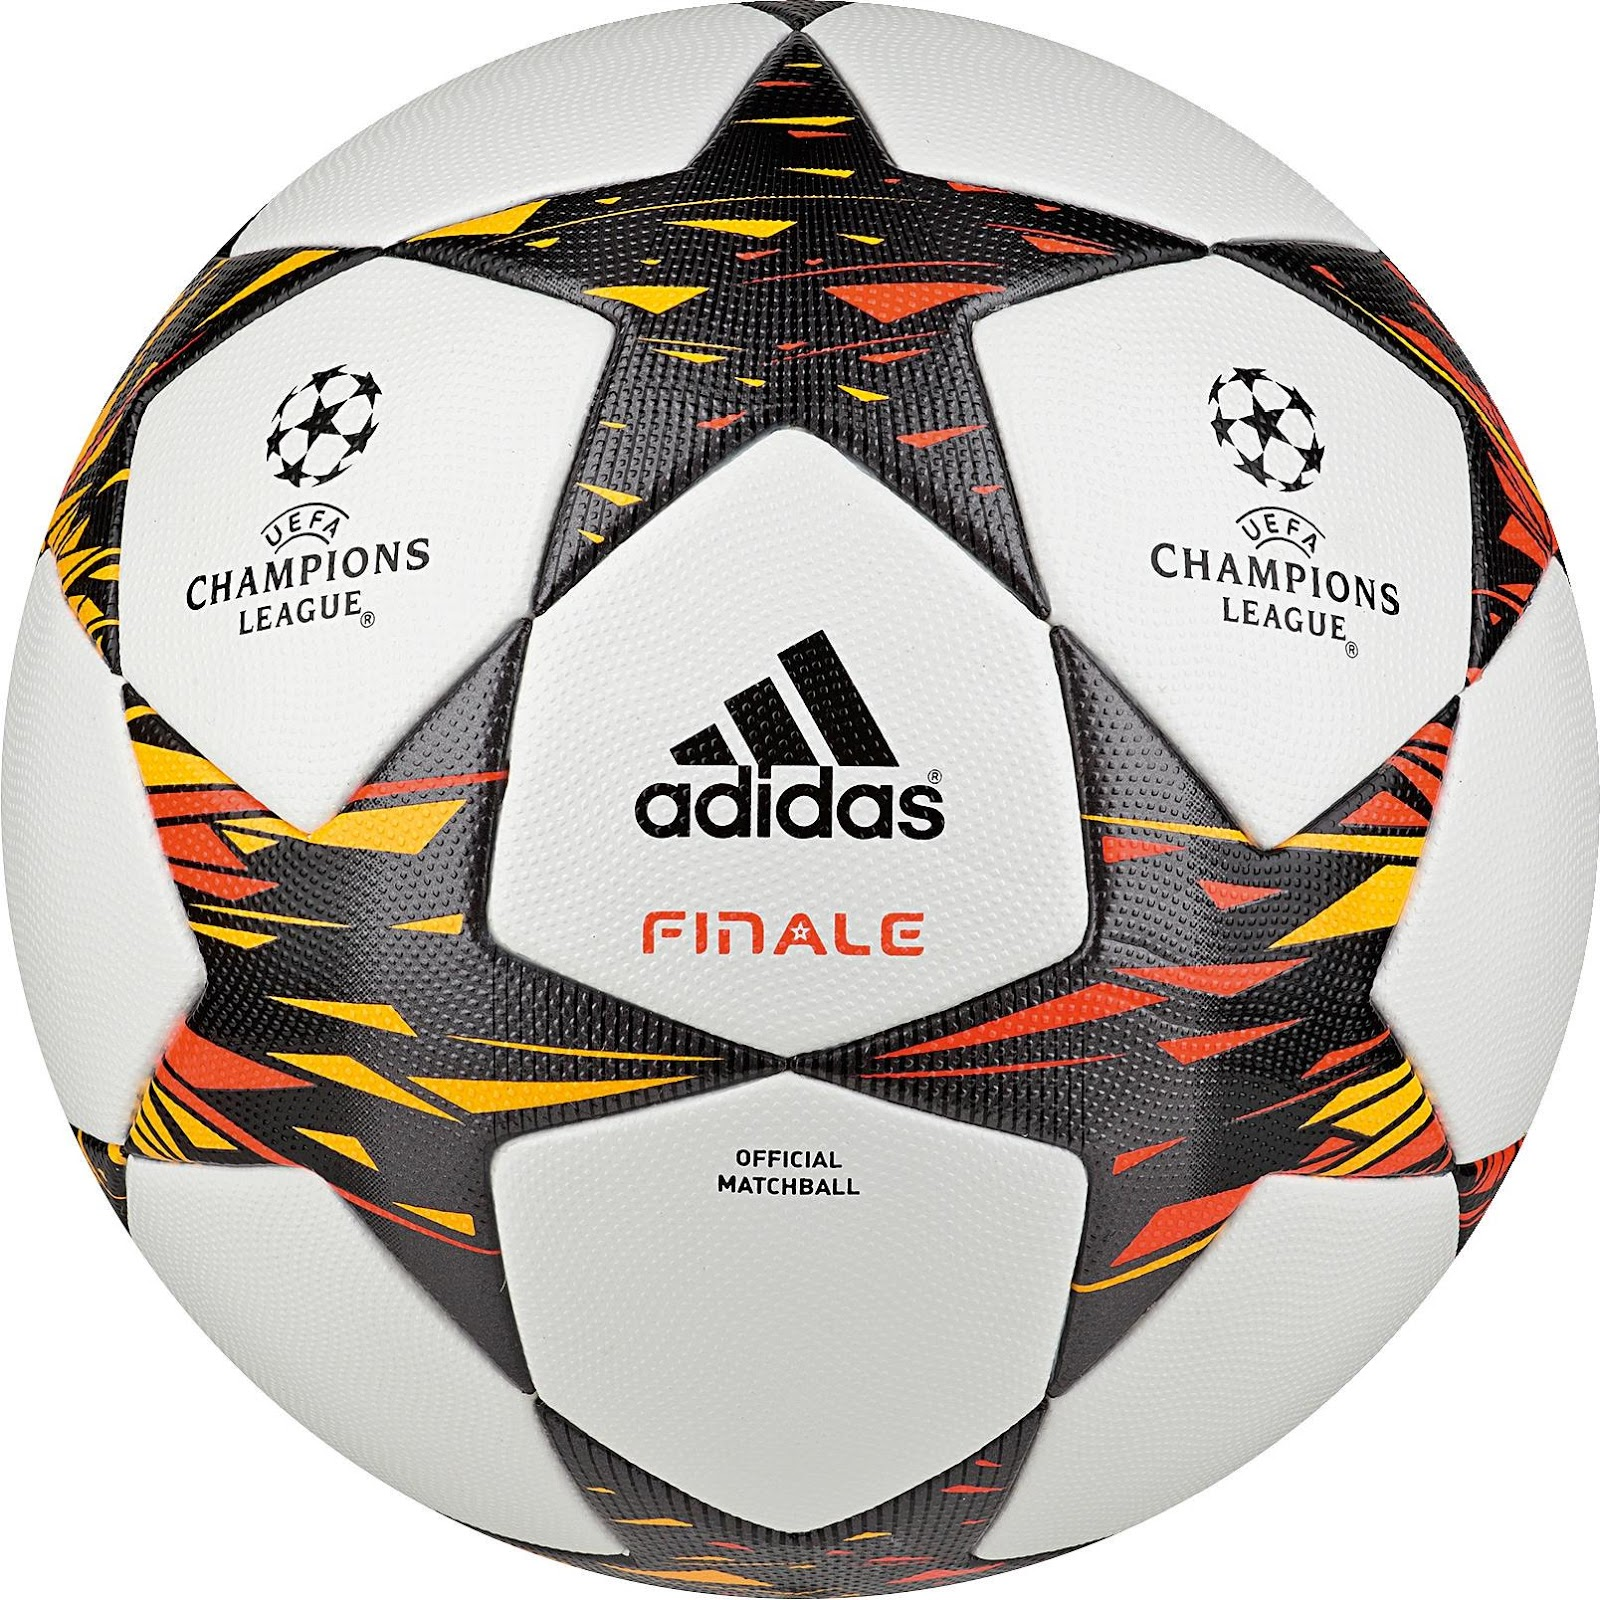 Champions League: Footy News: ADIDAS CHAMPIONS LEAGUE FINALE 14-15 BALL